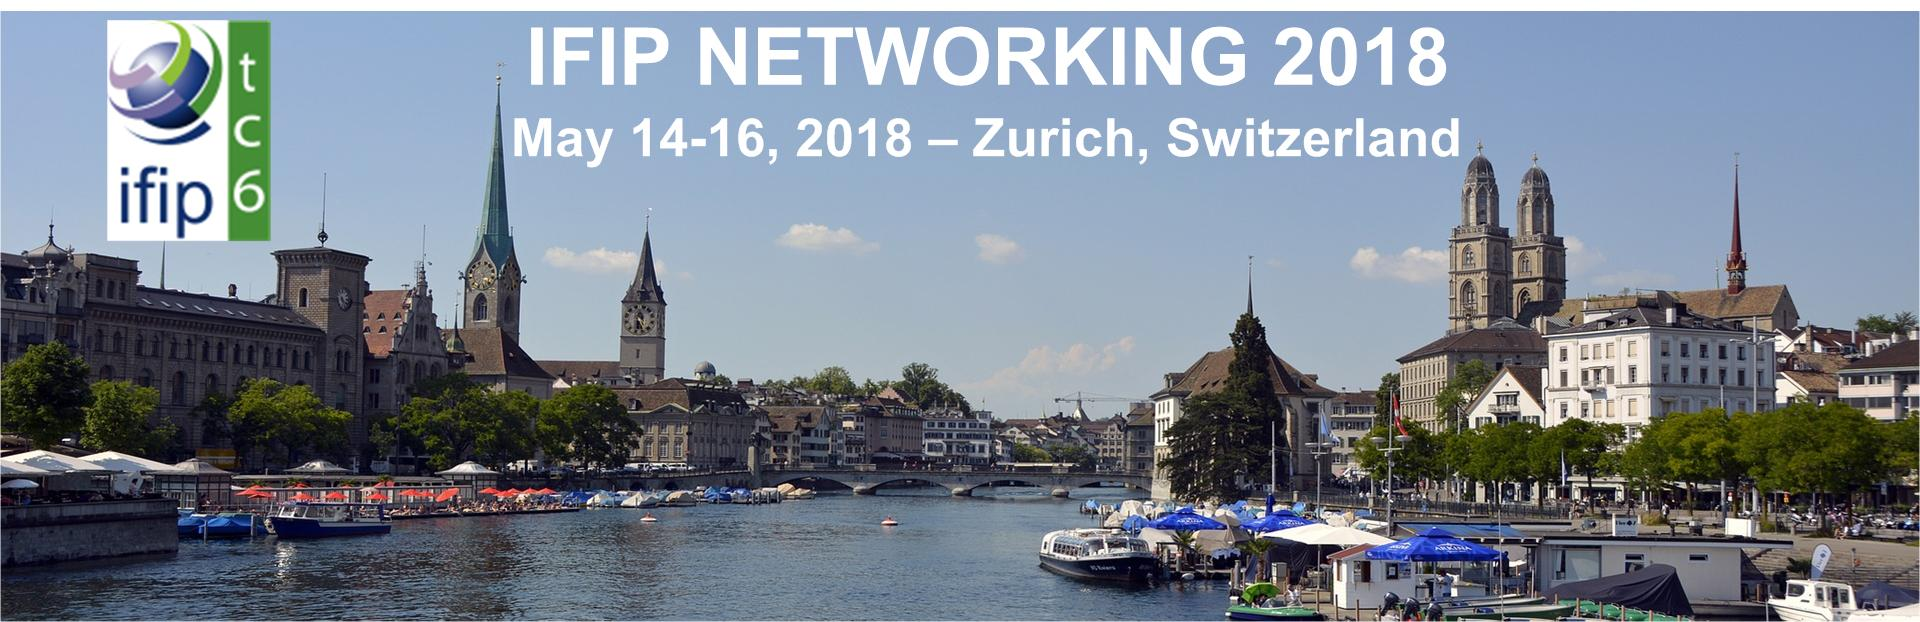 IFIP Networking 2018